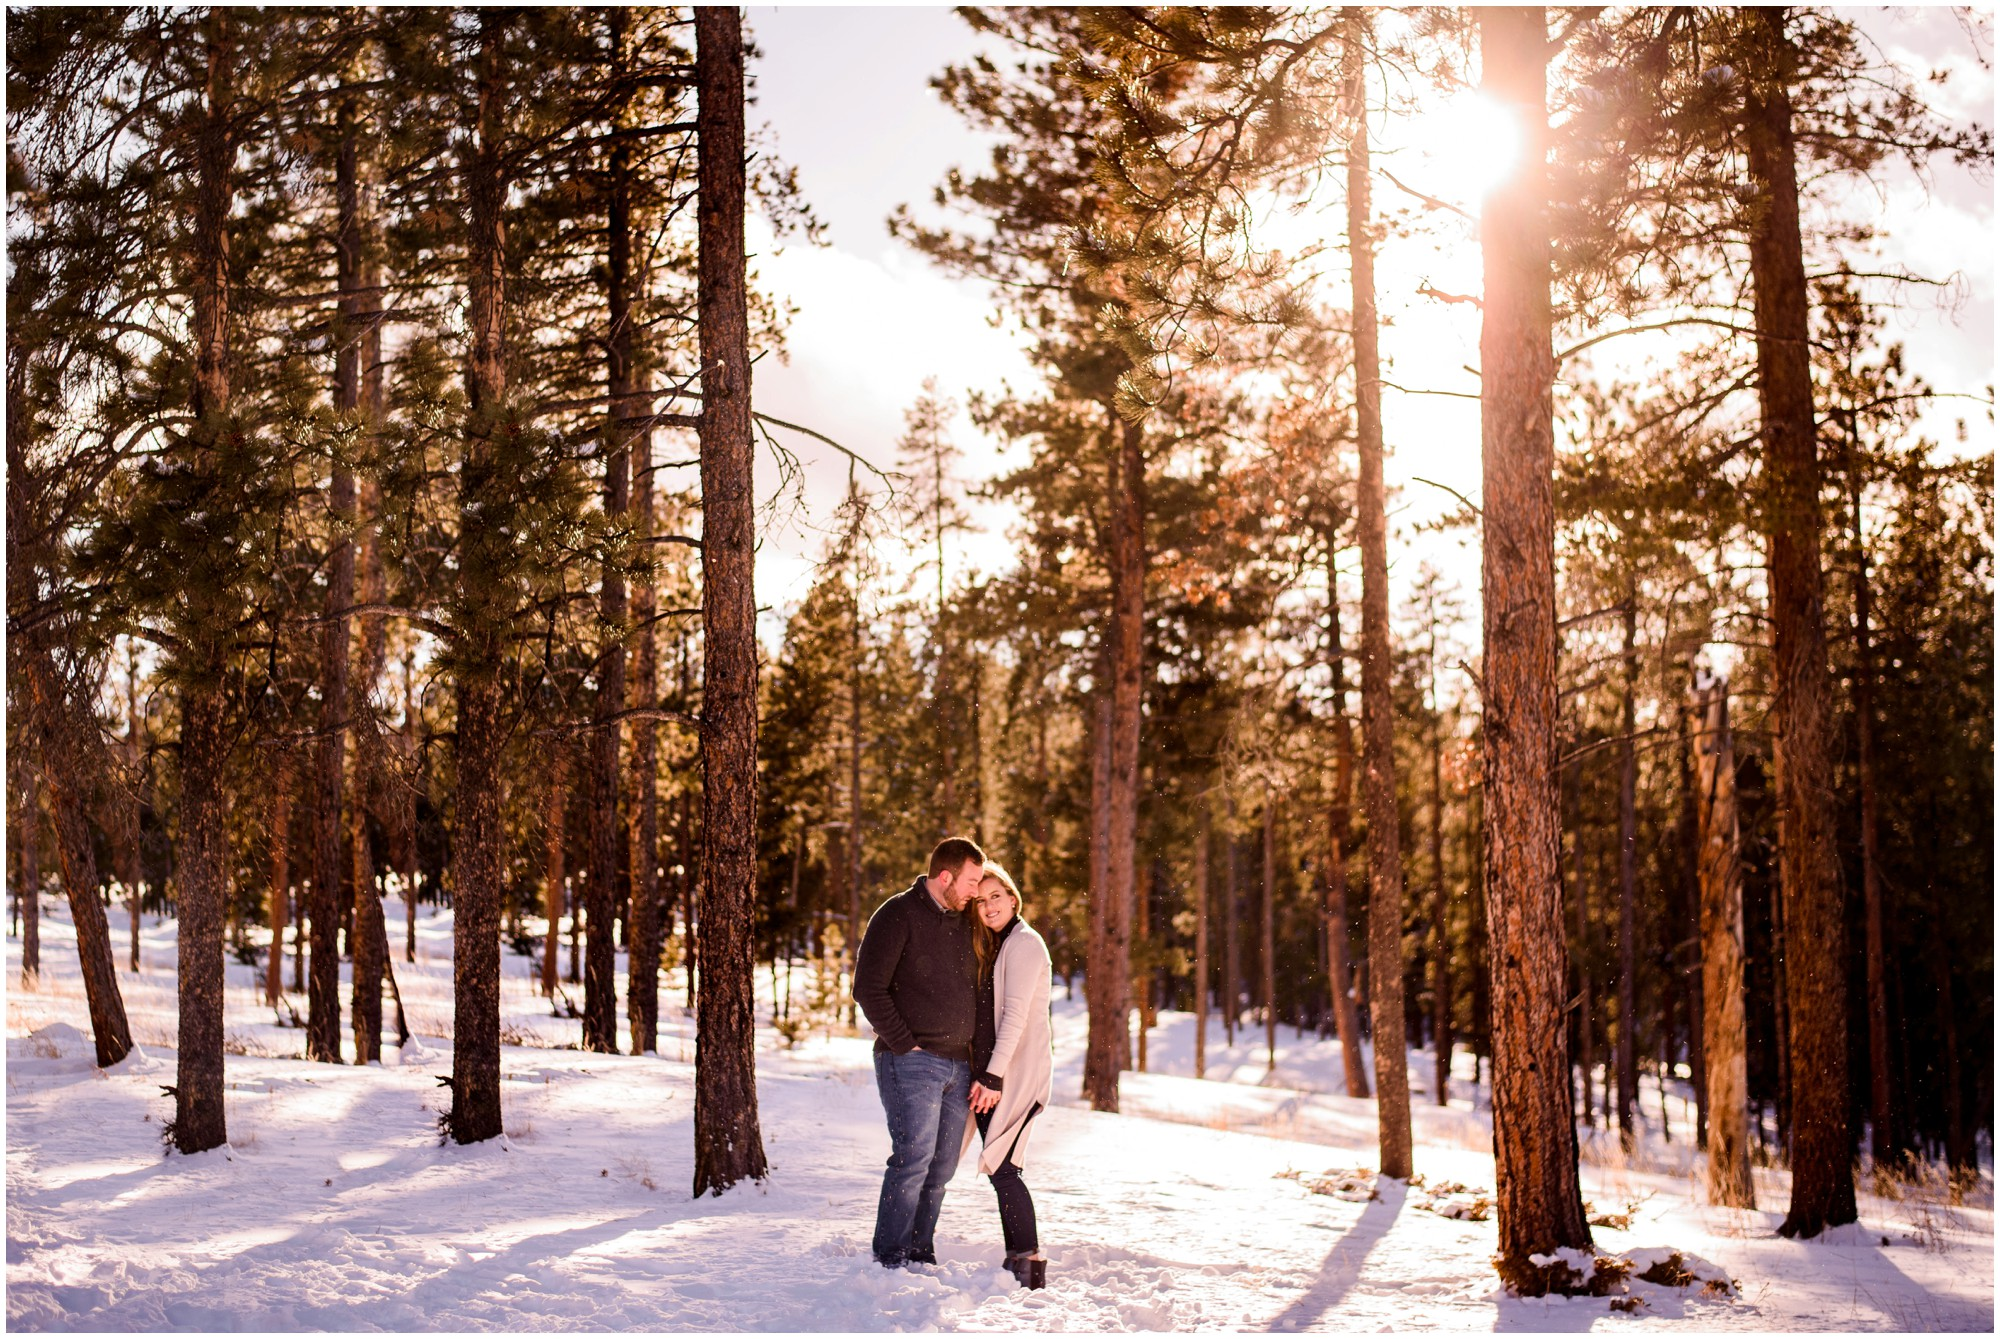 61-Evergreen-Colorado-winter-engagement-photography.jpg